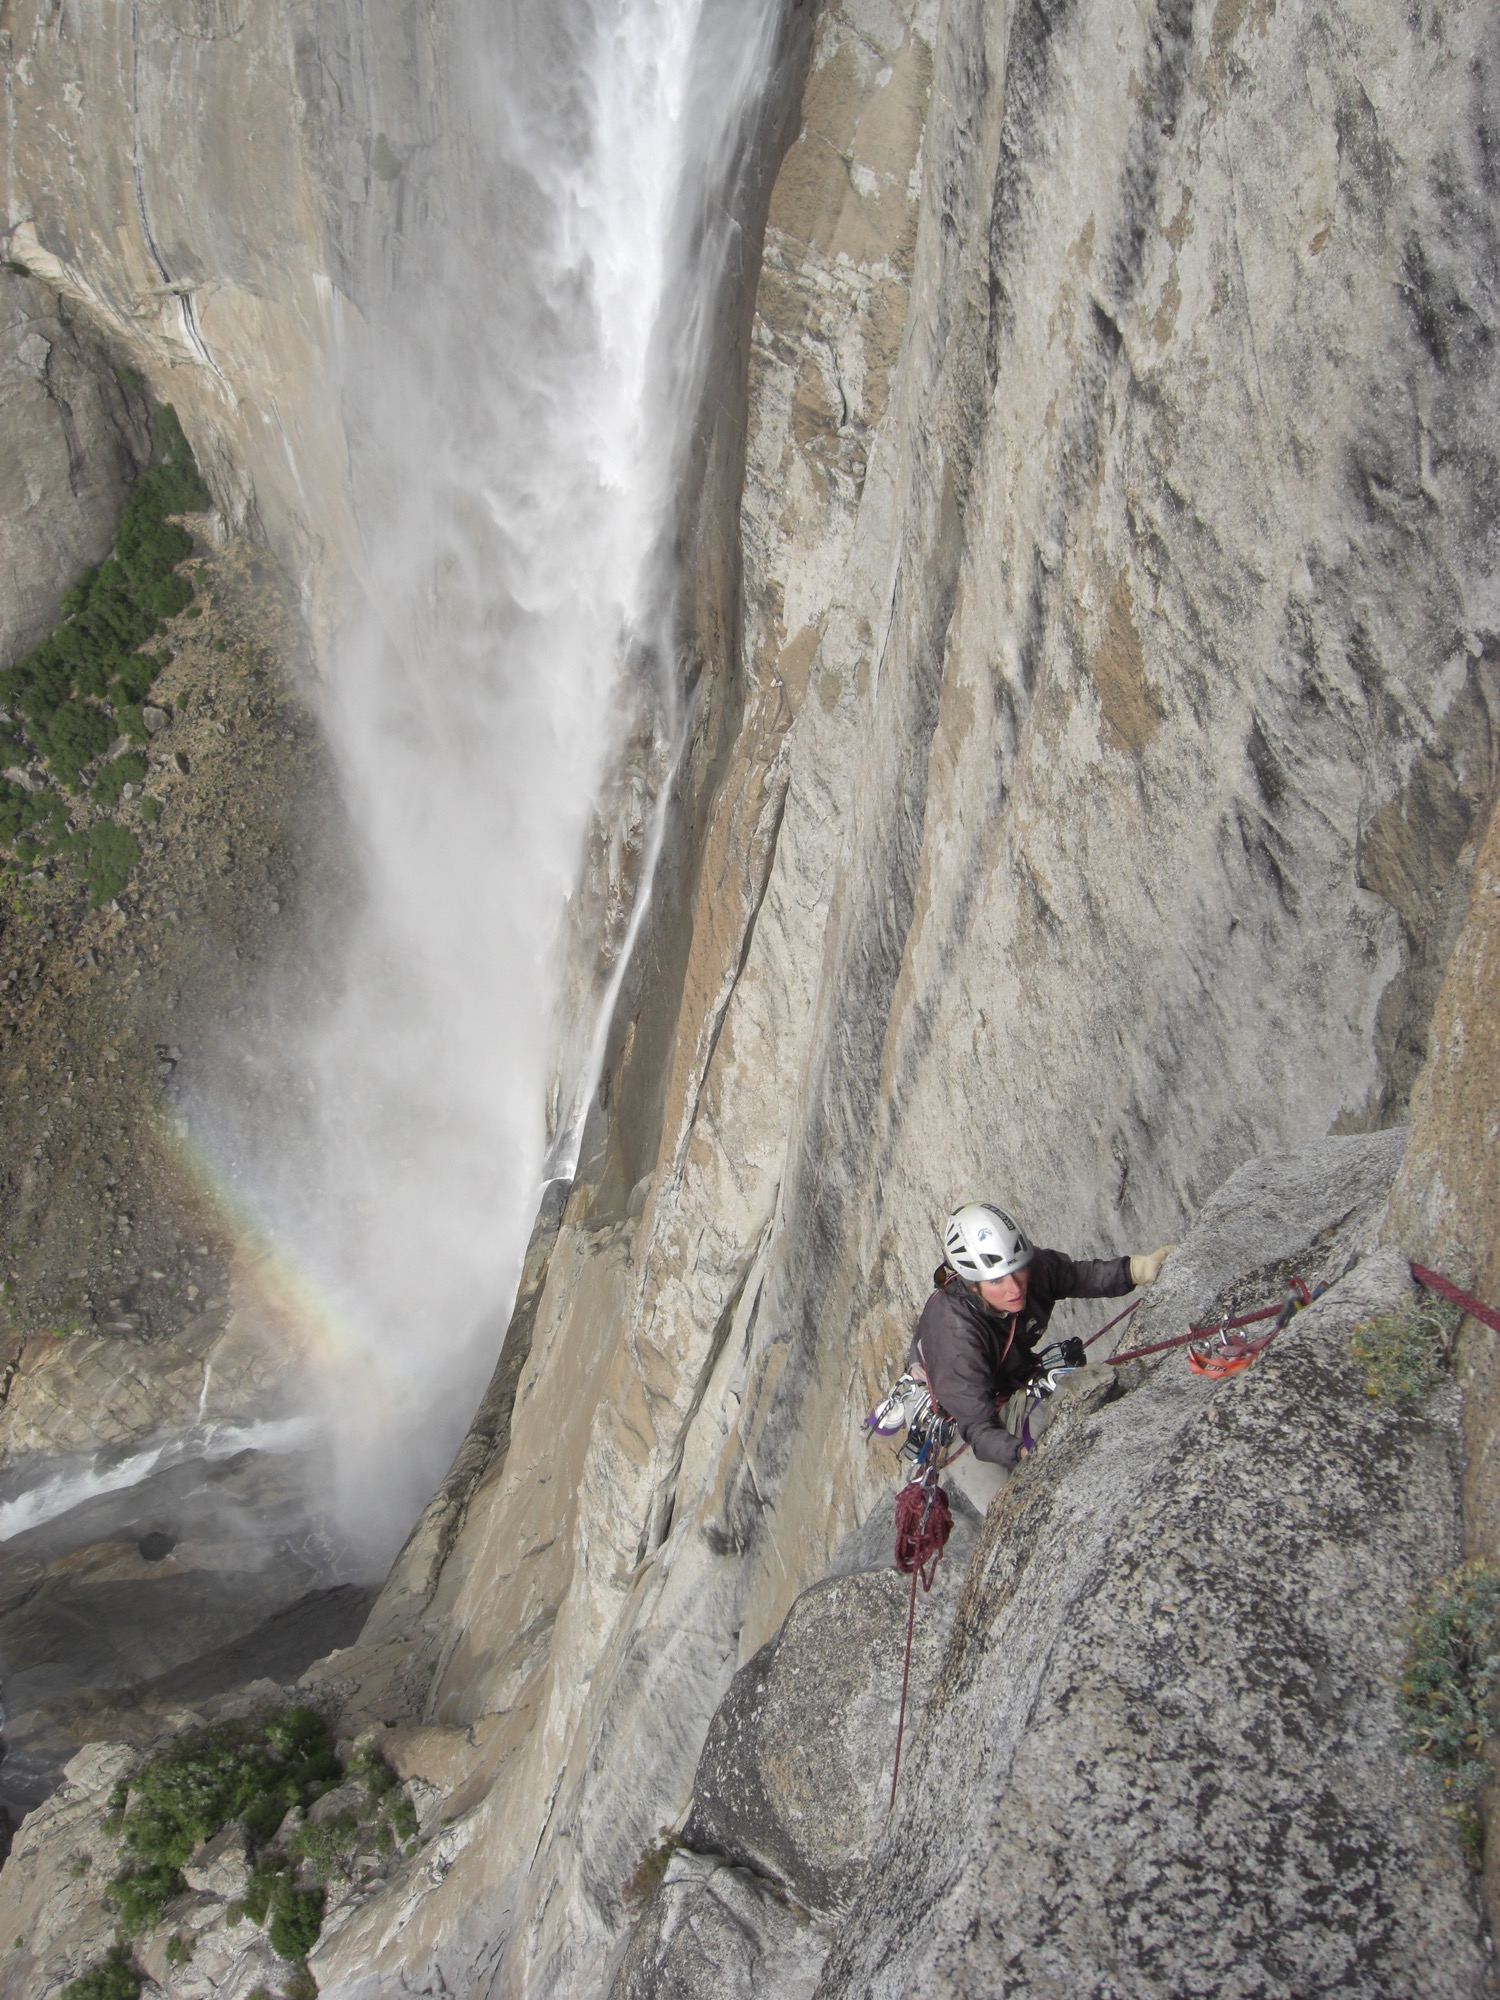 Lisa Van Sciver climbs Lost Arrow Spire Direct, Yosemite Falls in the background. Yosemite National Park, California. (Photo by Emily Stifler Wolfe)